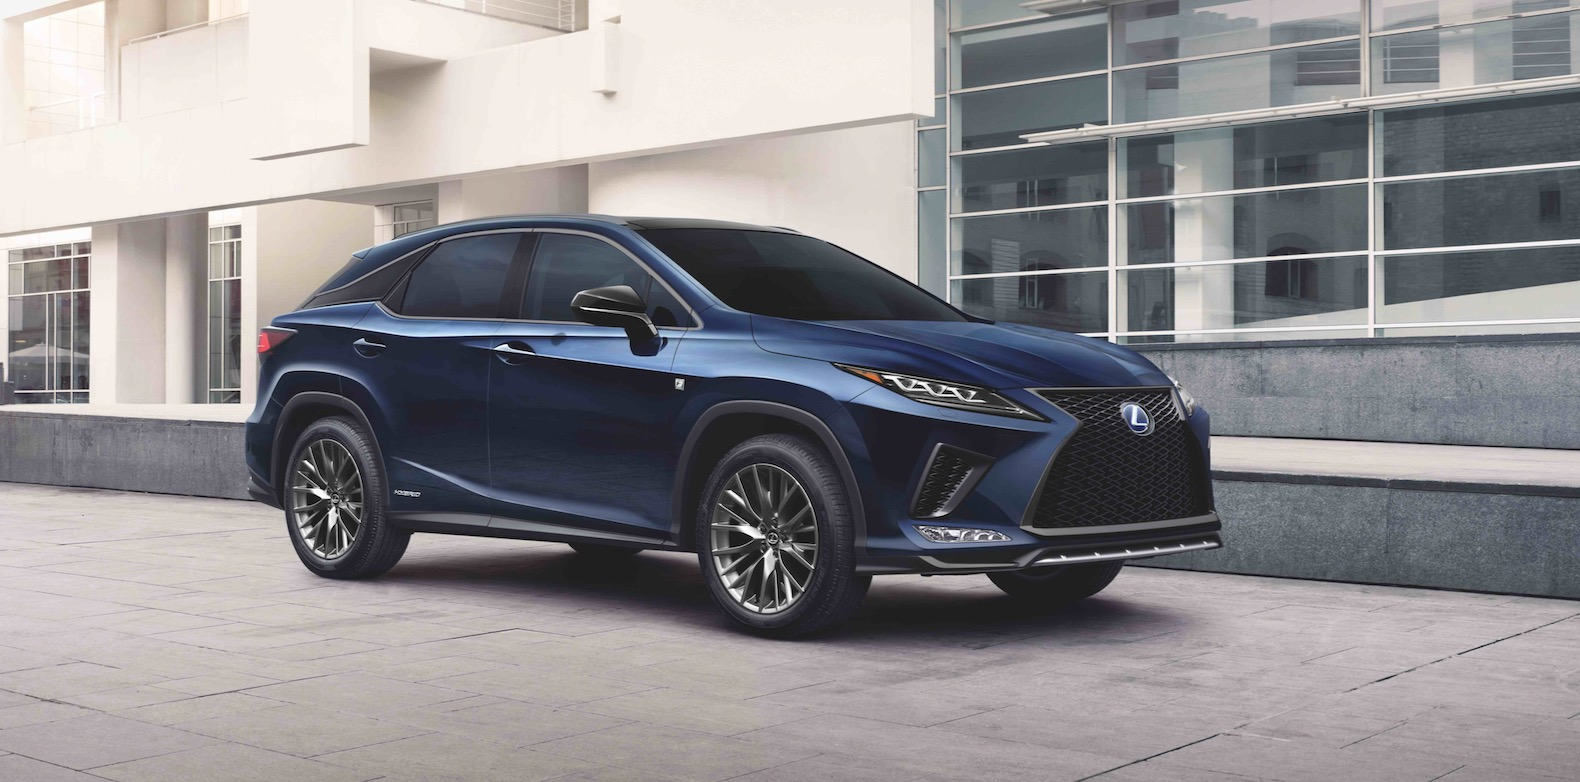 2021 Lexus Rx Gets More Standard Tech And The Black Line Special Edition The Torque Report